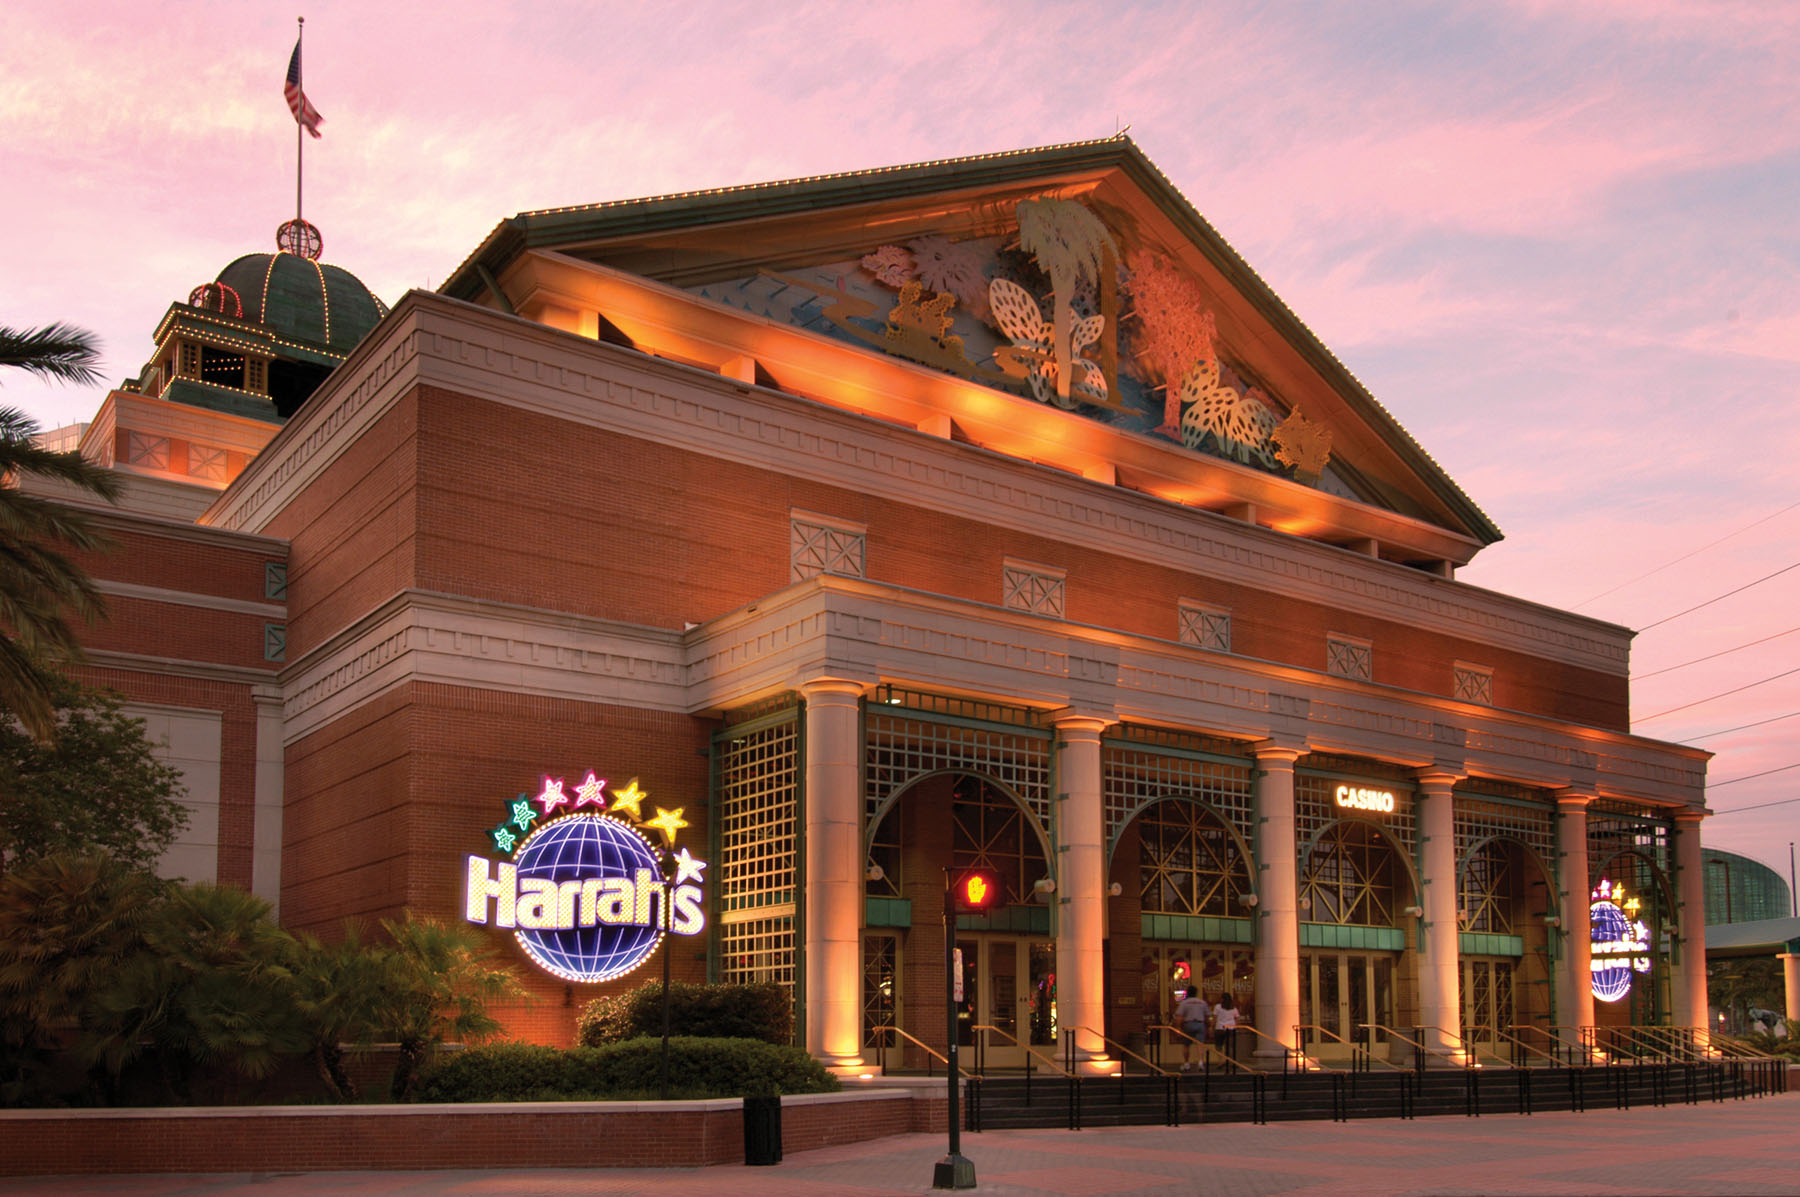 Harrahs casino louisiana 4